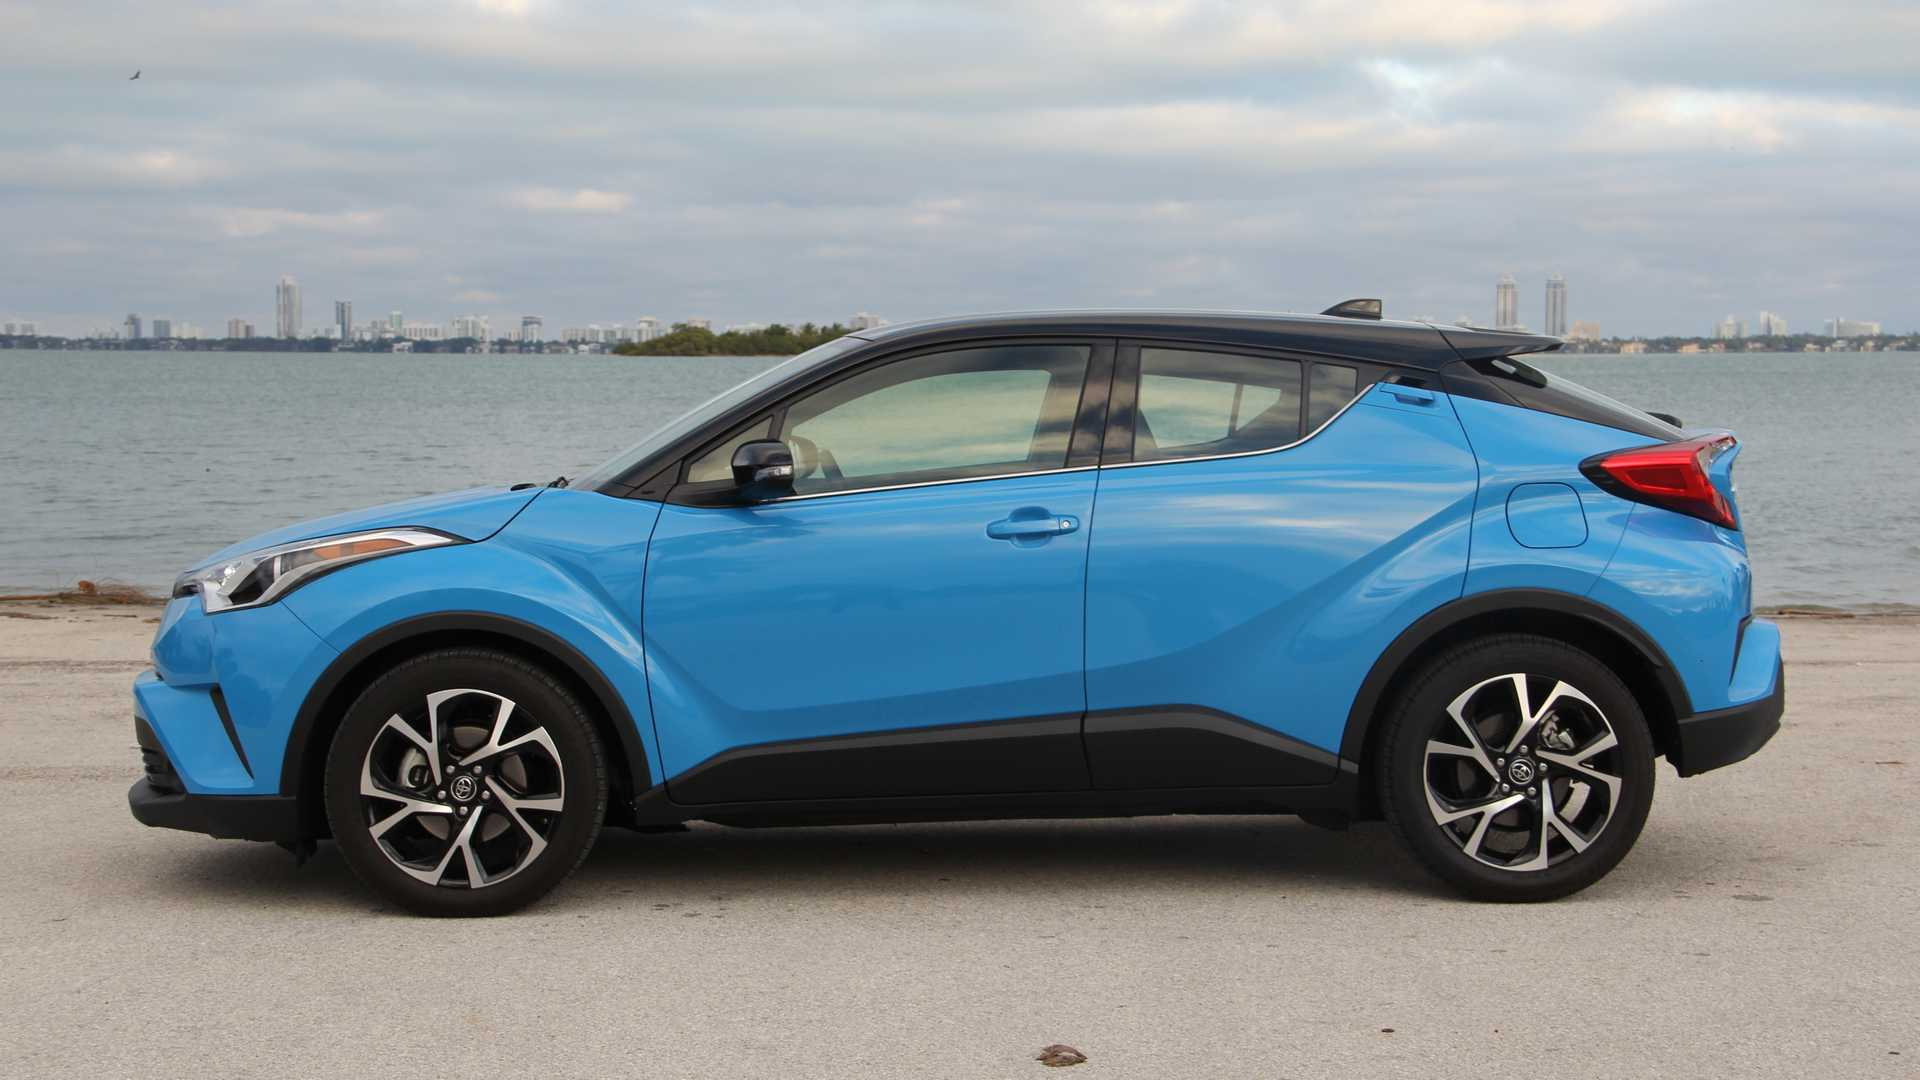 2019 Toyota C-HR Gets New Base Model With Drastically Lower Price